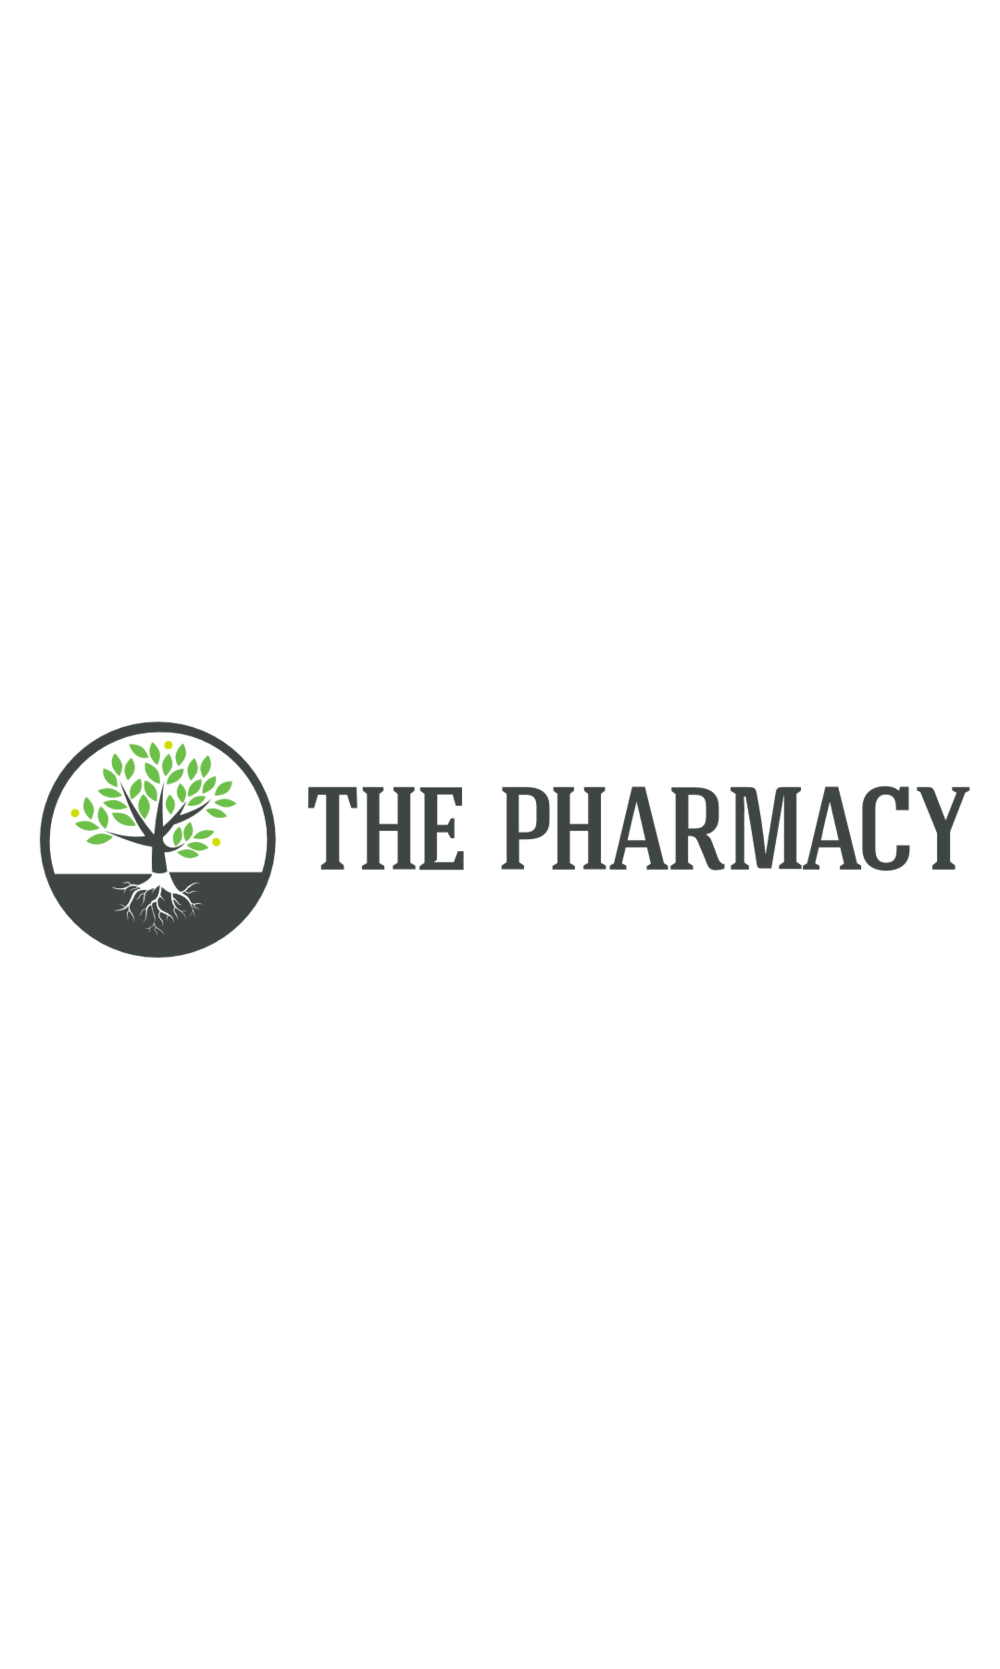 The Pharmacy Logo.png